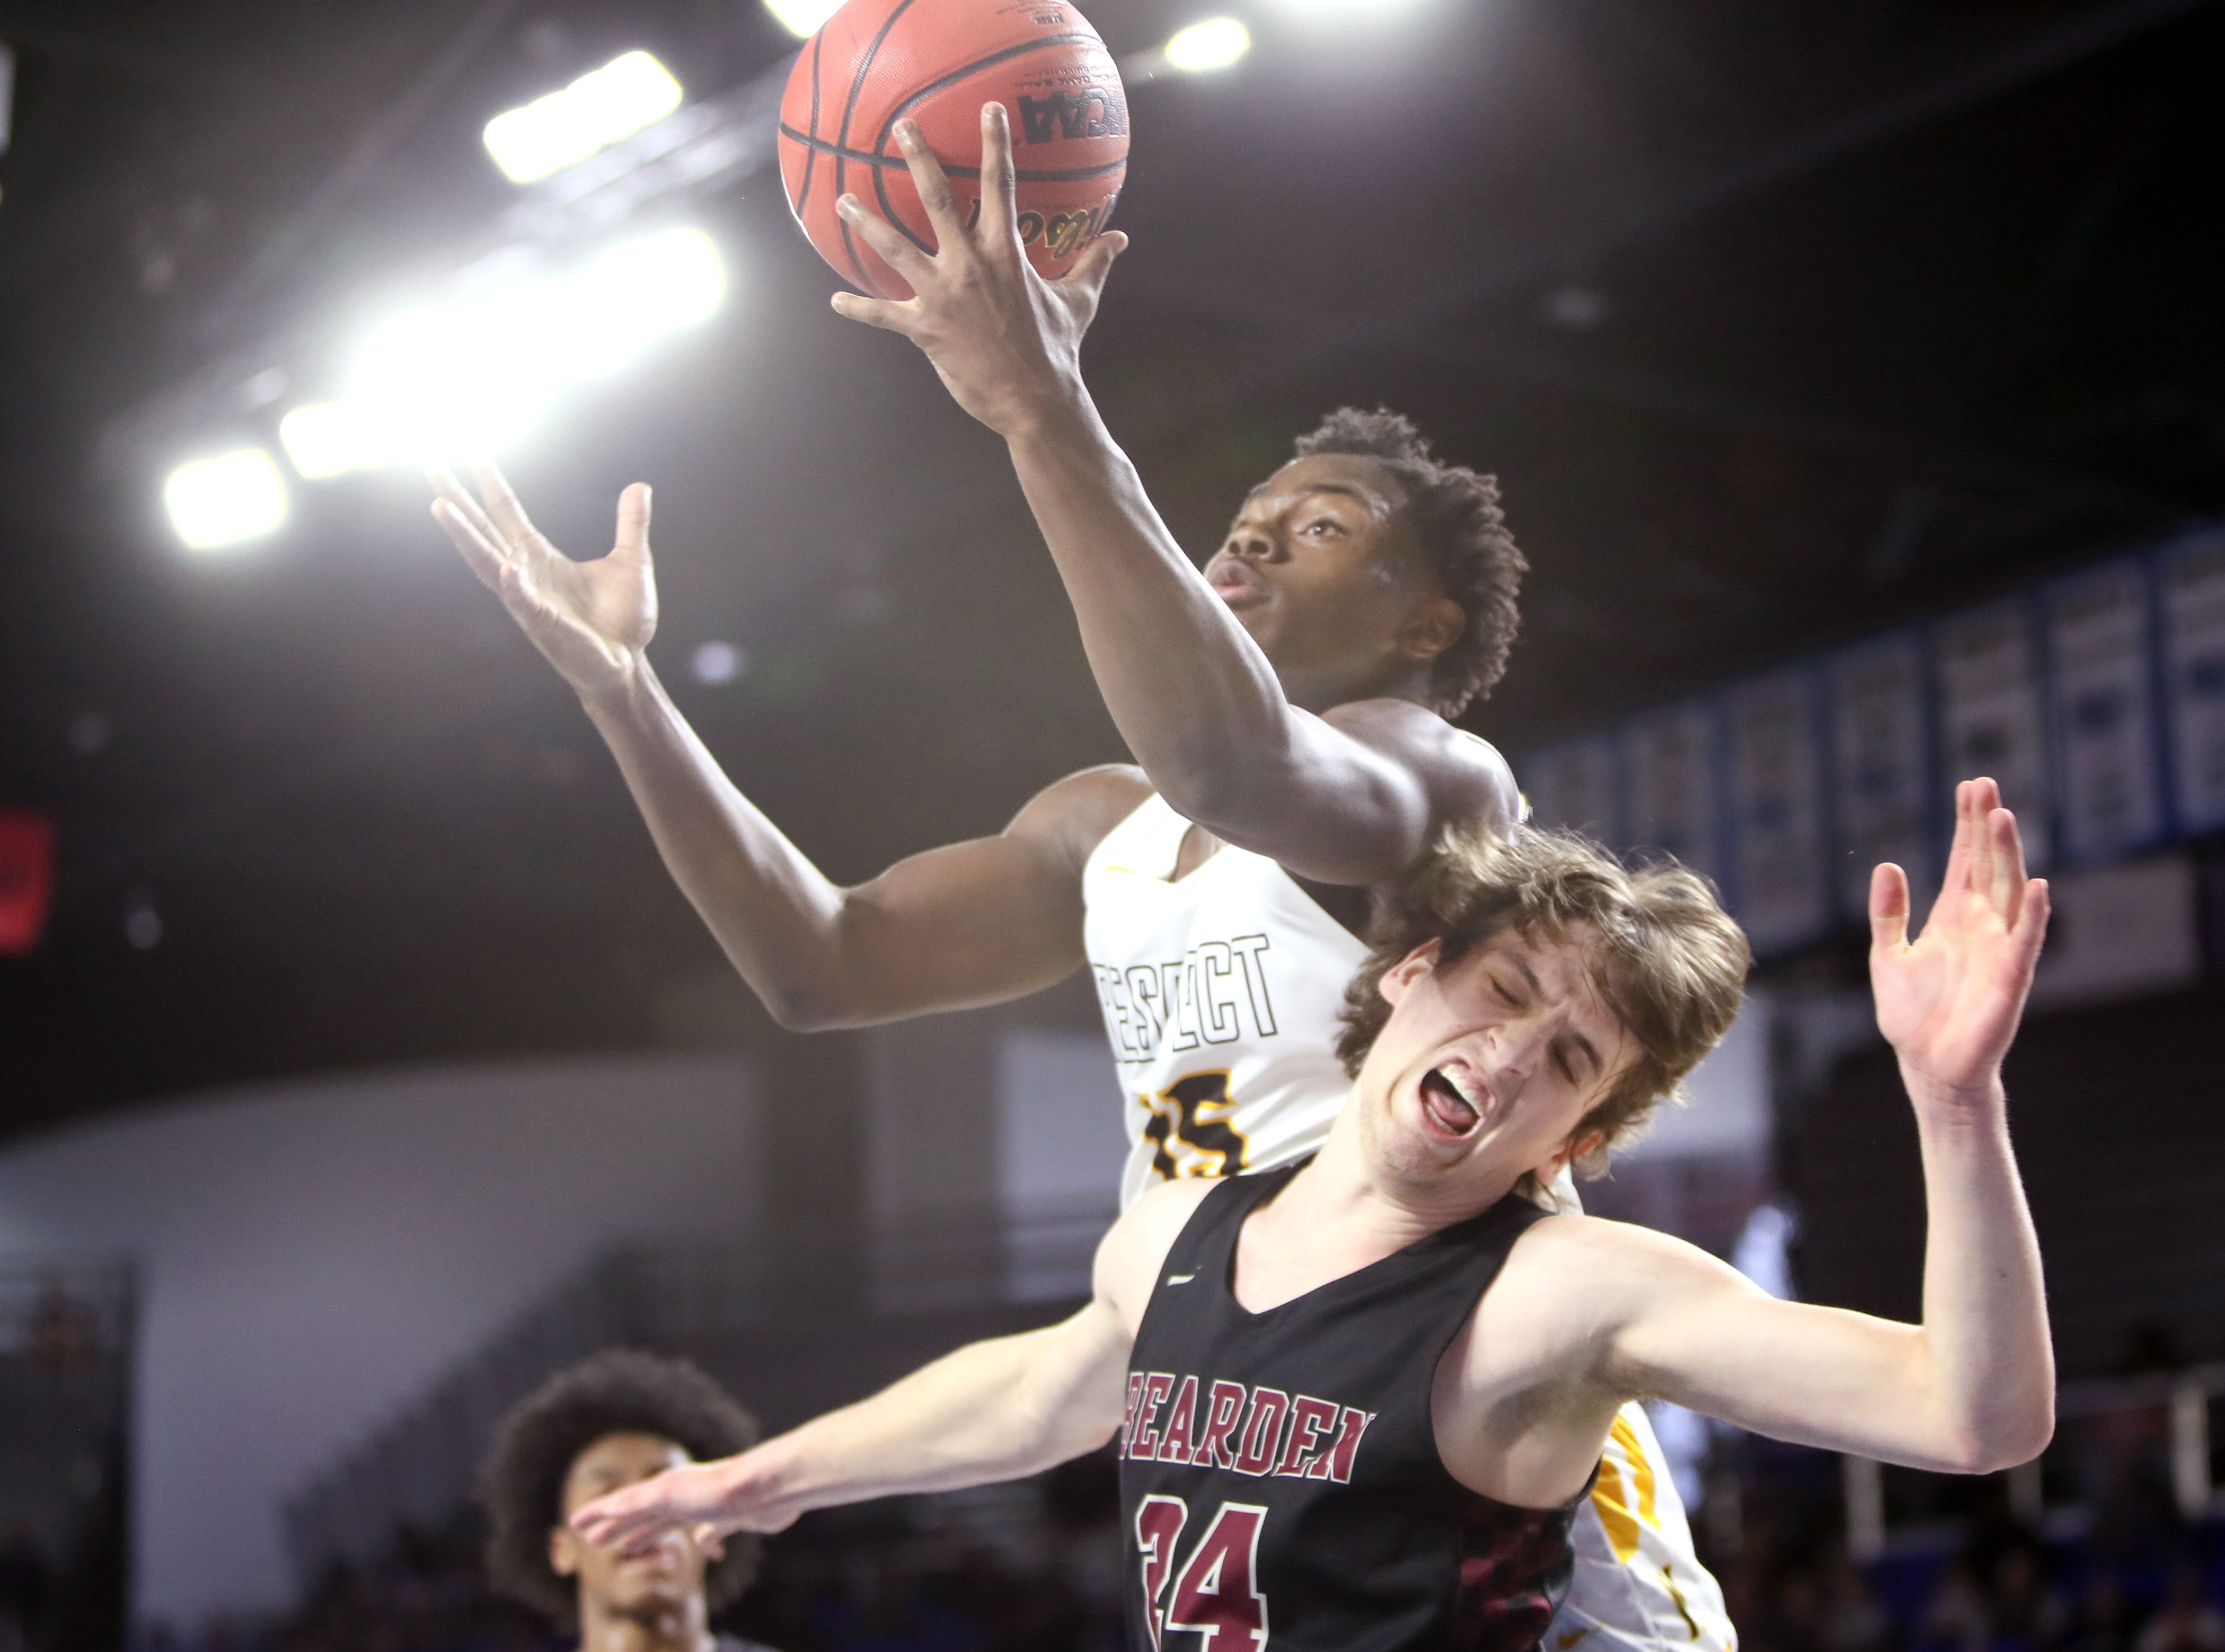 Whitehaven's Keveon Mullins grabs a rebound over Bearden's Kordell Kah during the Class AAA boys basketball state semifinal at the Murphy Center in Murfreesboro, Tenn. on Thursday, March 14, 2019.